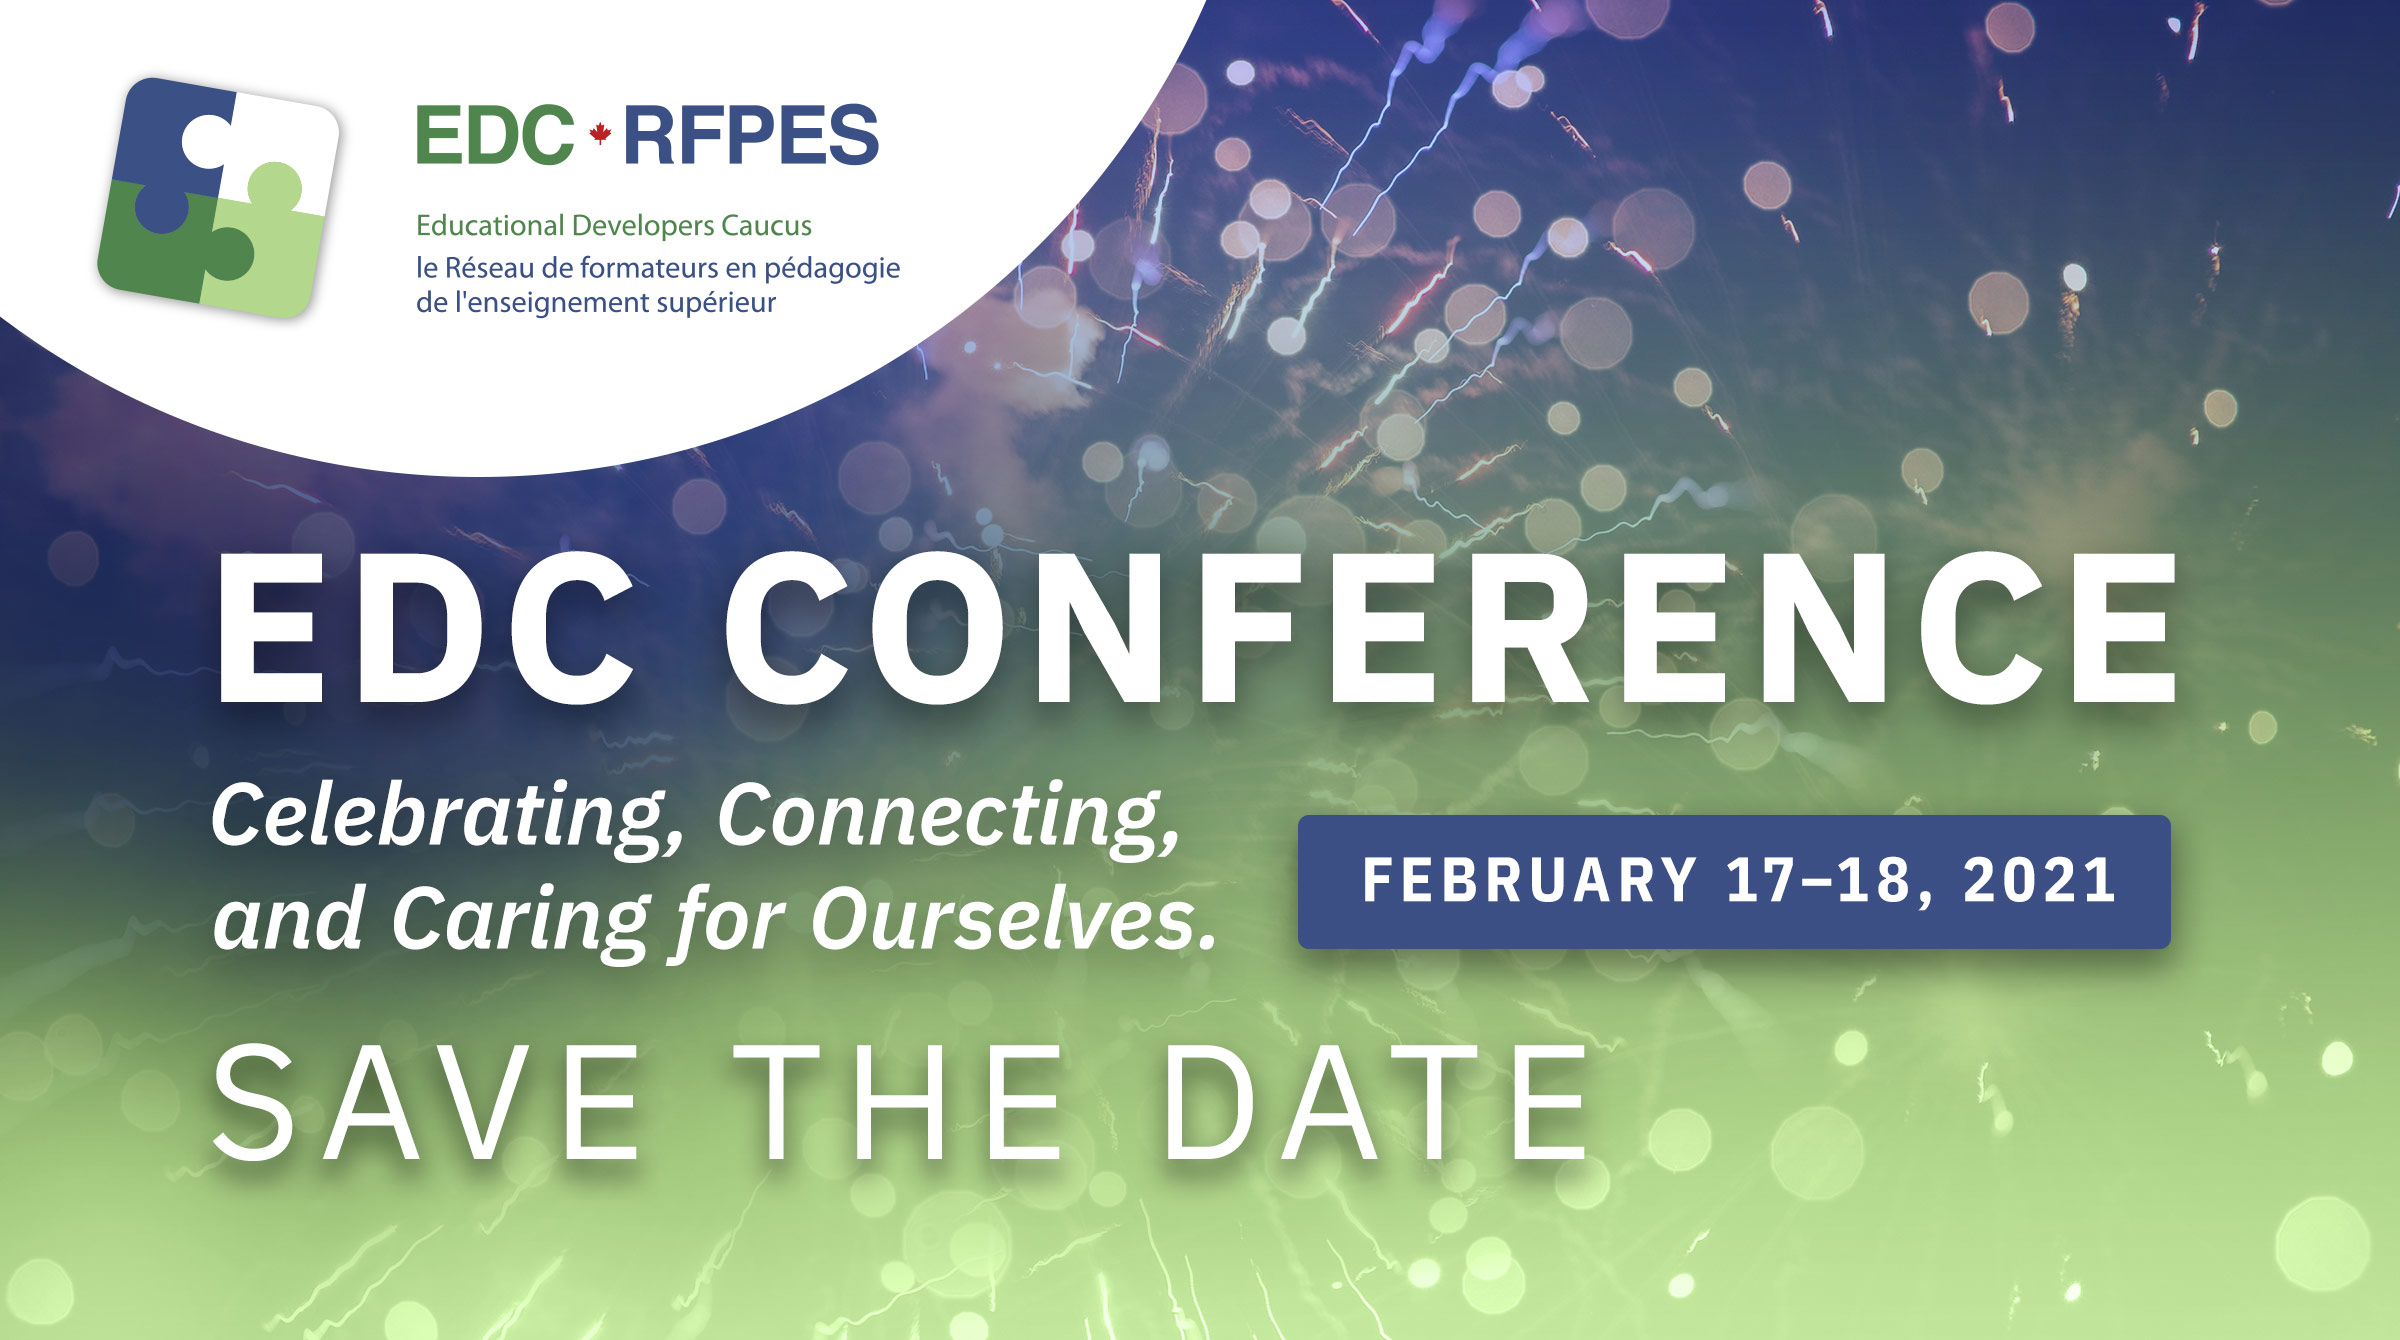 EDC Conference Save the date February 17-18